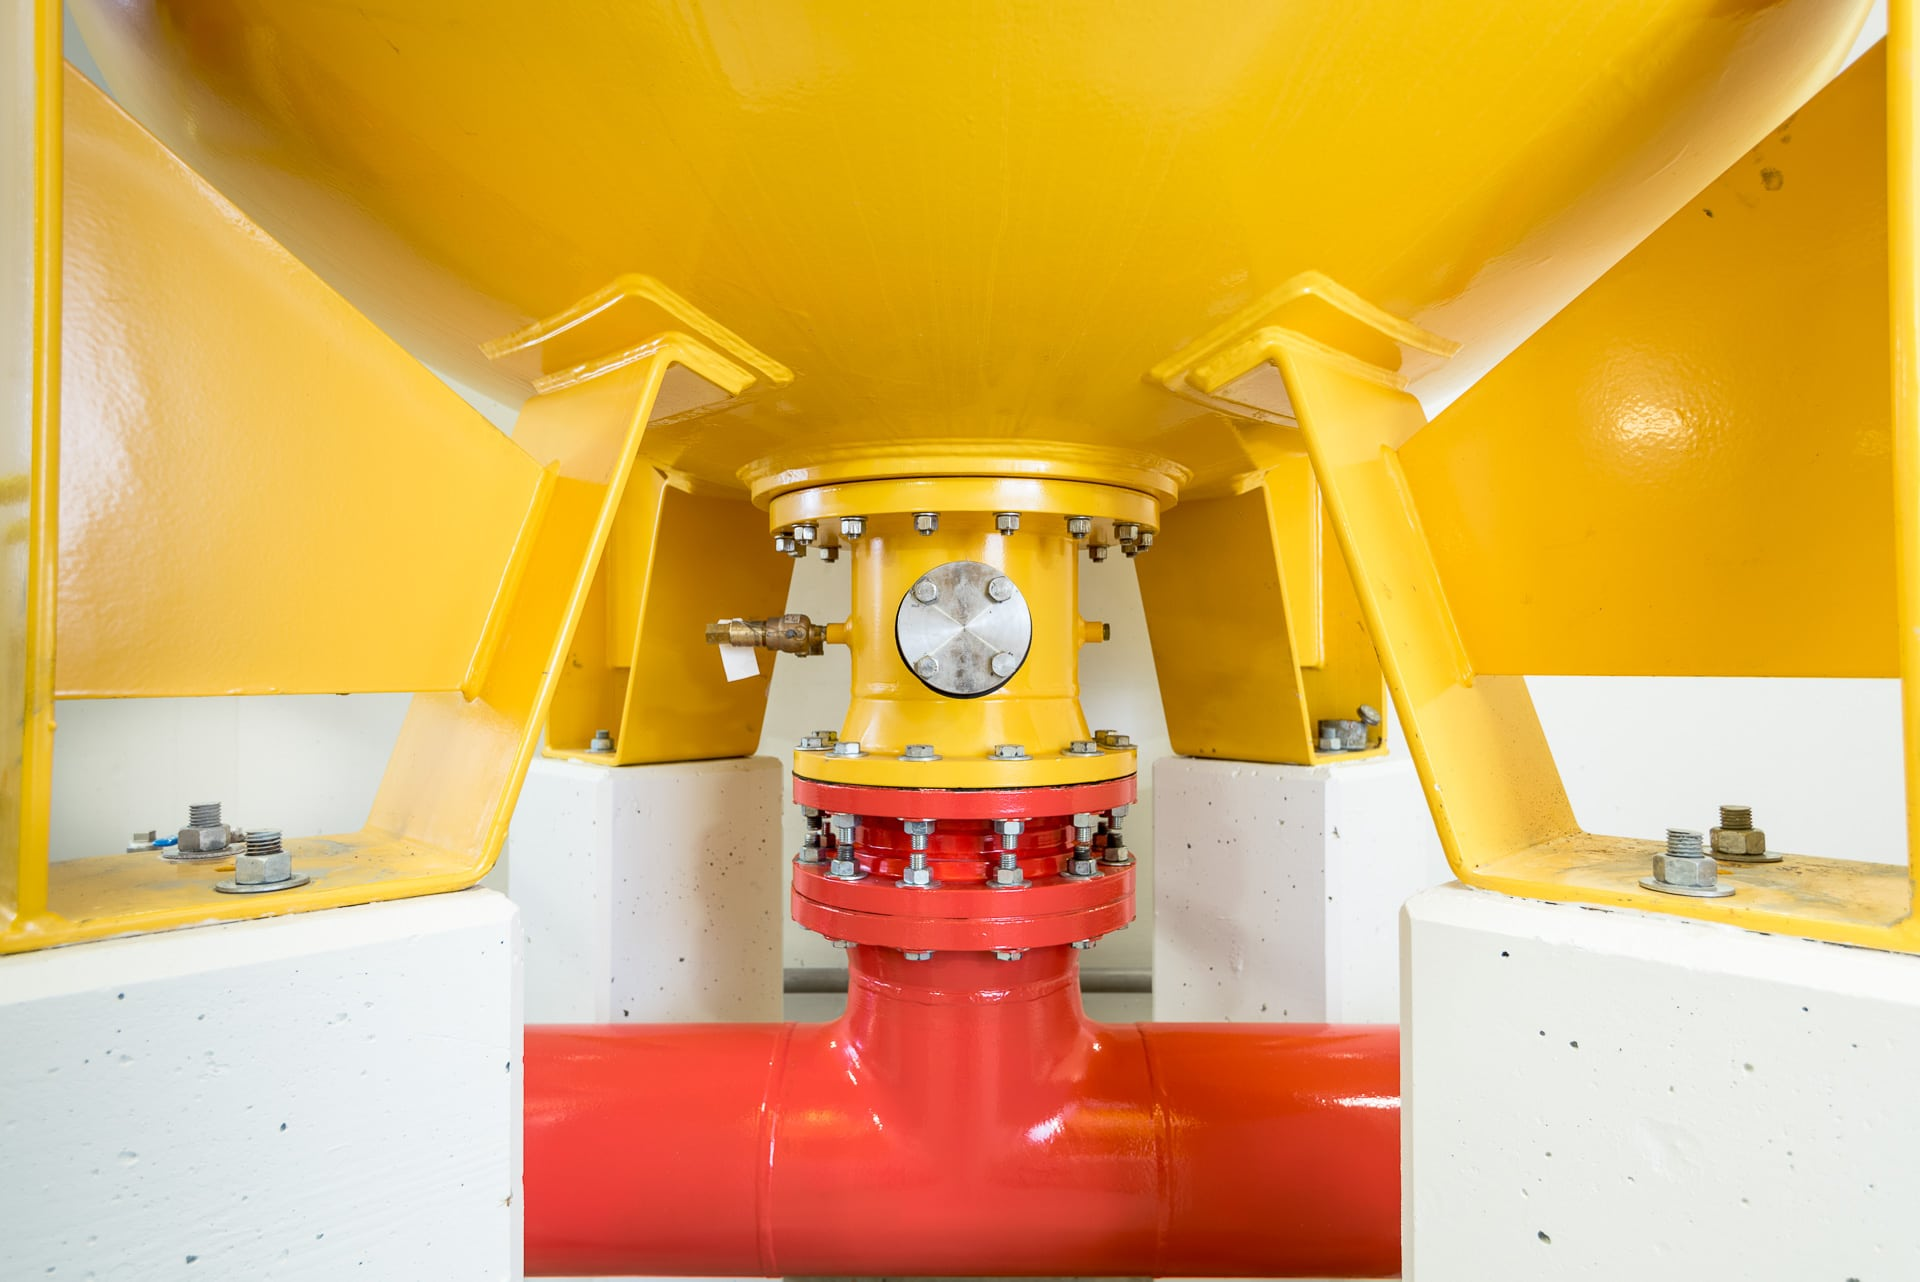 Industrial photography of a yellow and red vessel at a water treatment plant in Vancouver, British Columbia. Photographed during branding projects for Maple Reinders.